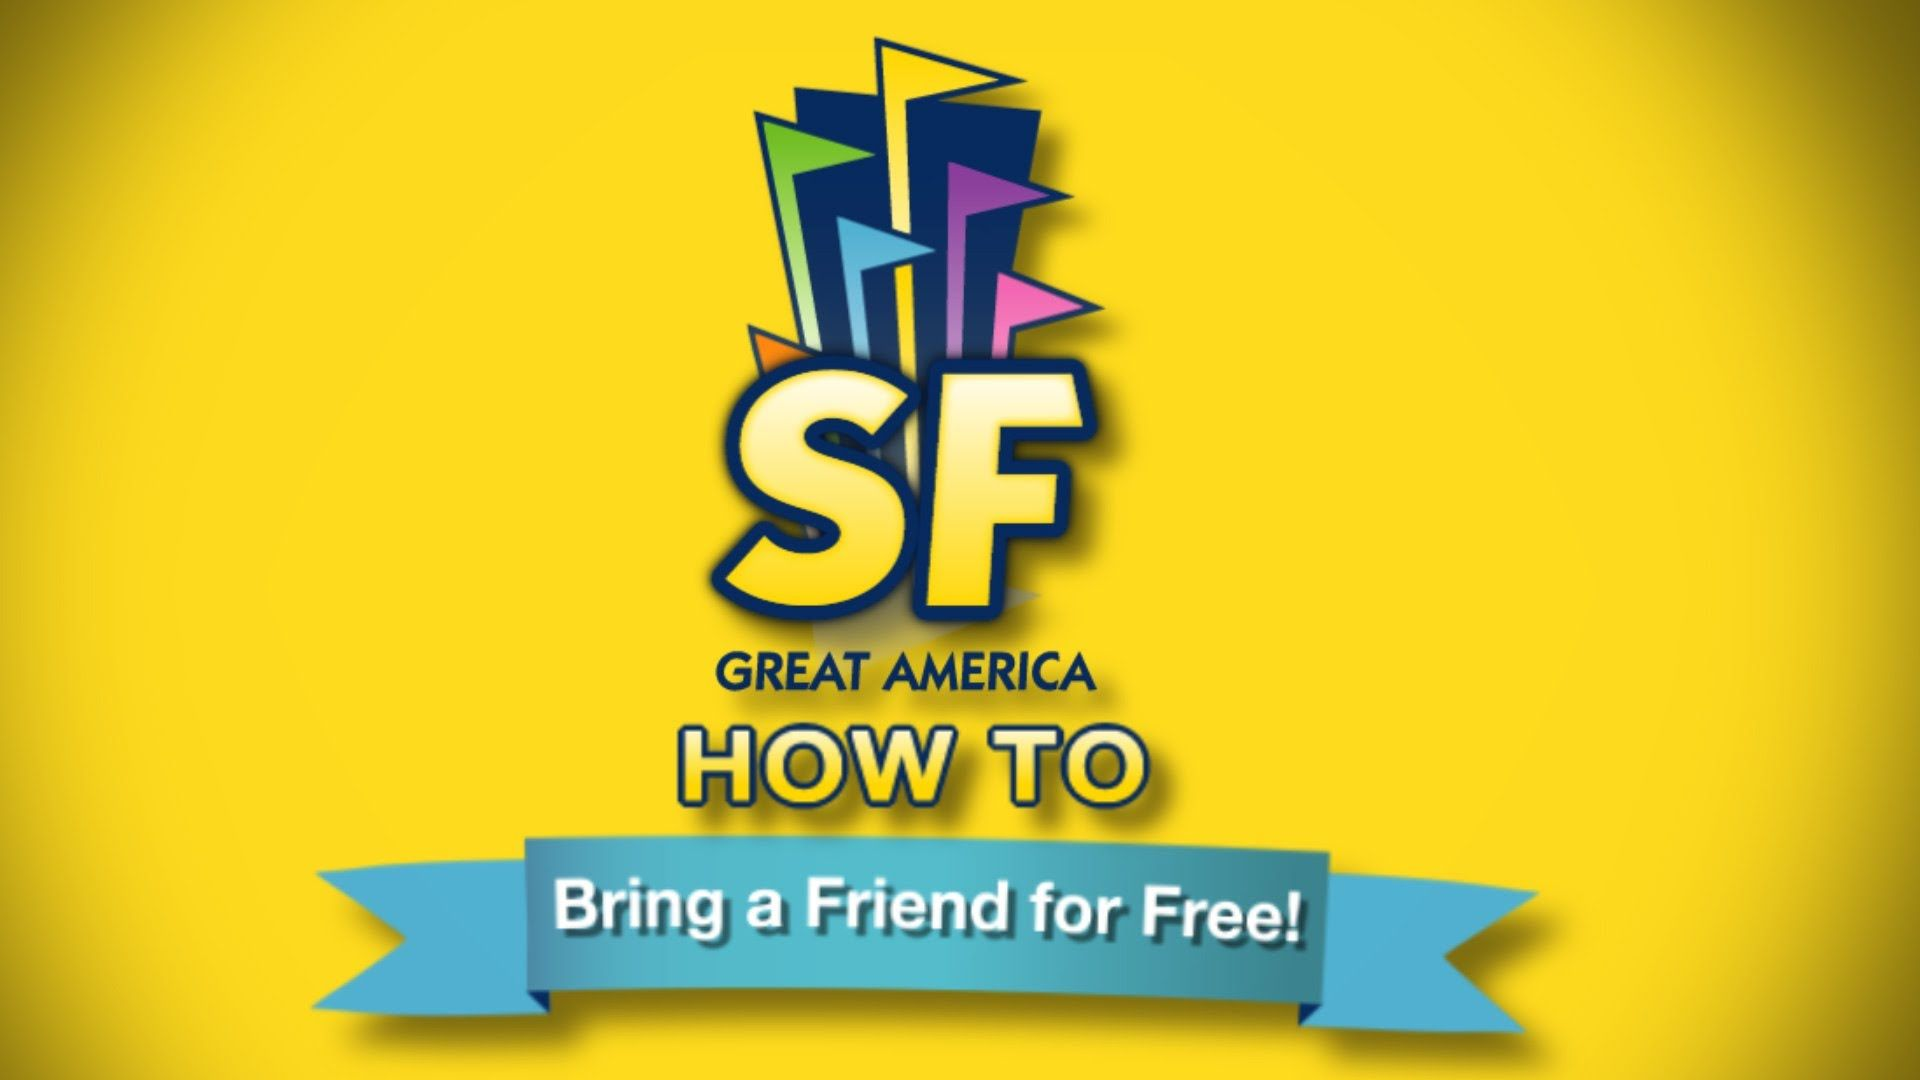 How To Bring A Friend Free Bring A Friend Six Flags Great America